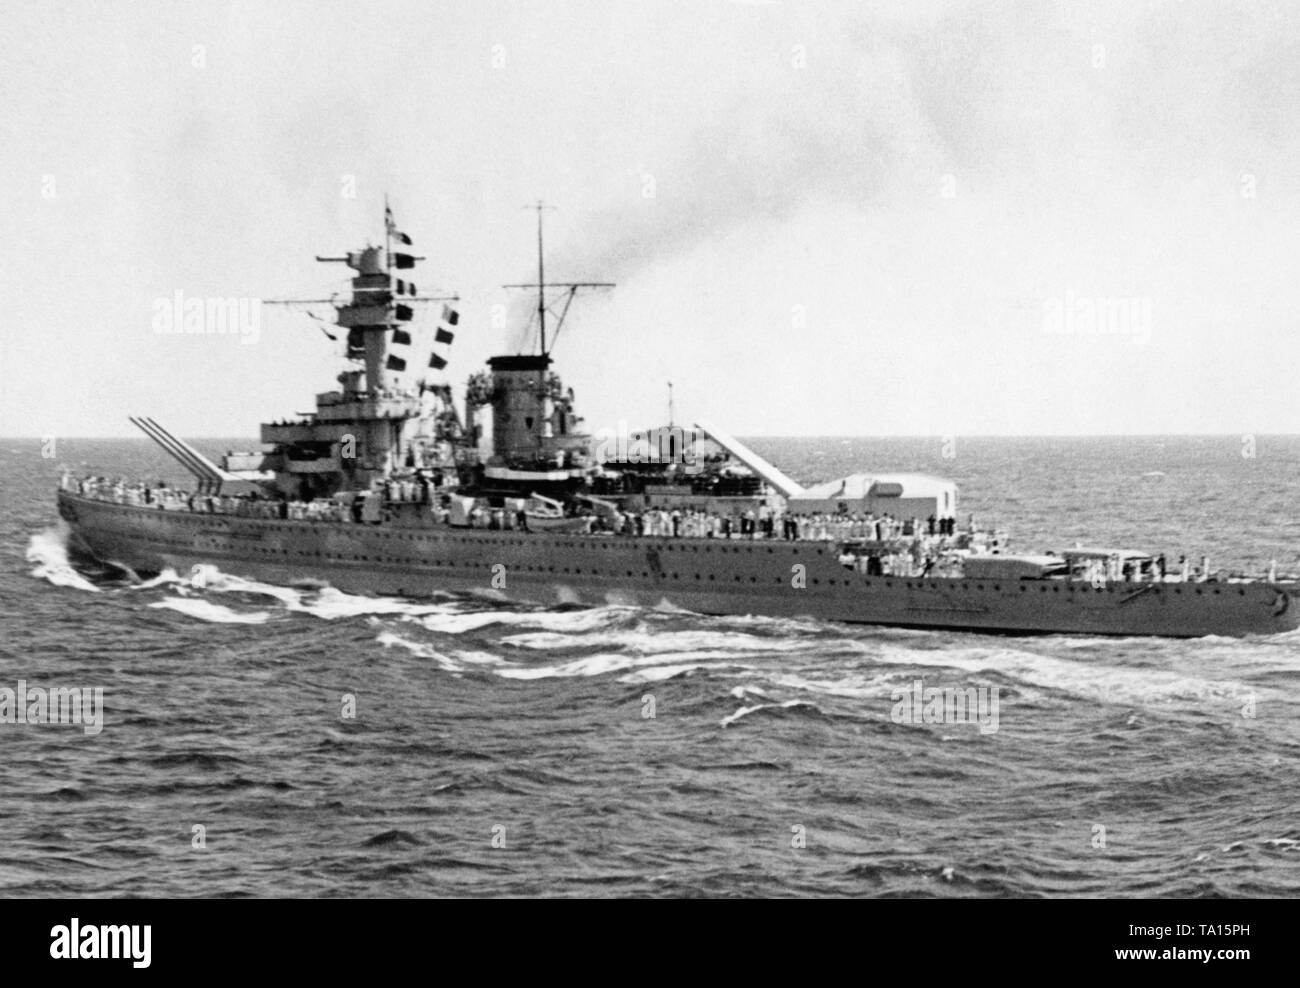 Photoof theheavy cruiser 'Deutschland' in a stormy sea during a trip abroad in 1935. The crew has lined up on the deck. The twoturrets with six 28 cm quick-fire guns at thebow and at therear. - Stock Image